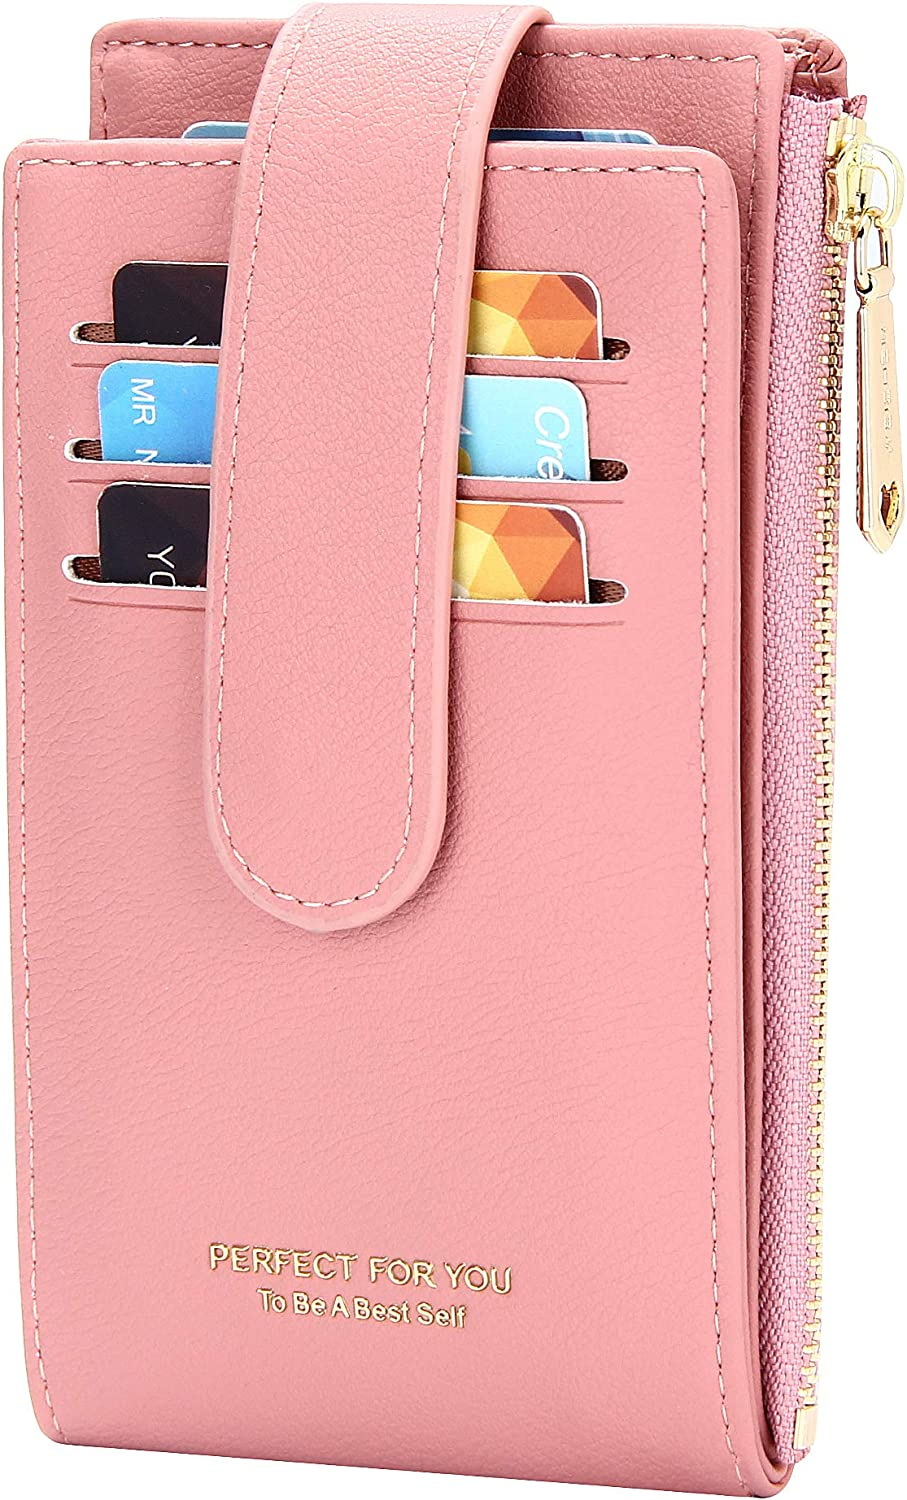 Some reservation OIDERY 35% OFF RFID Card Holder Wallet for Bifold Zipper Women Slim